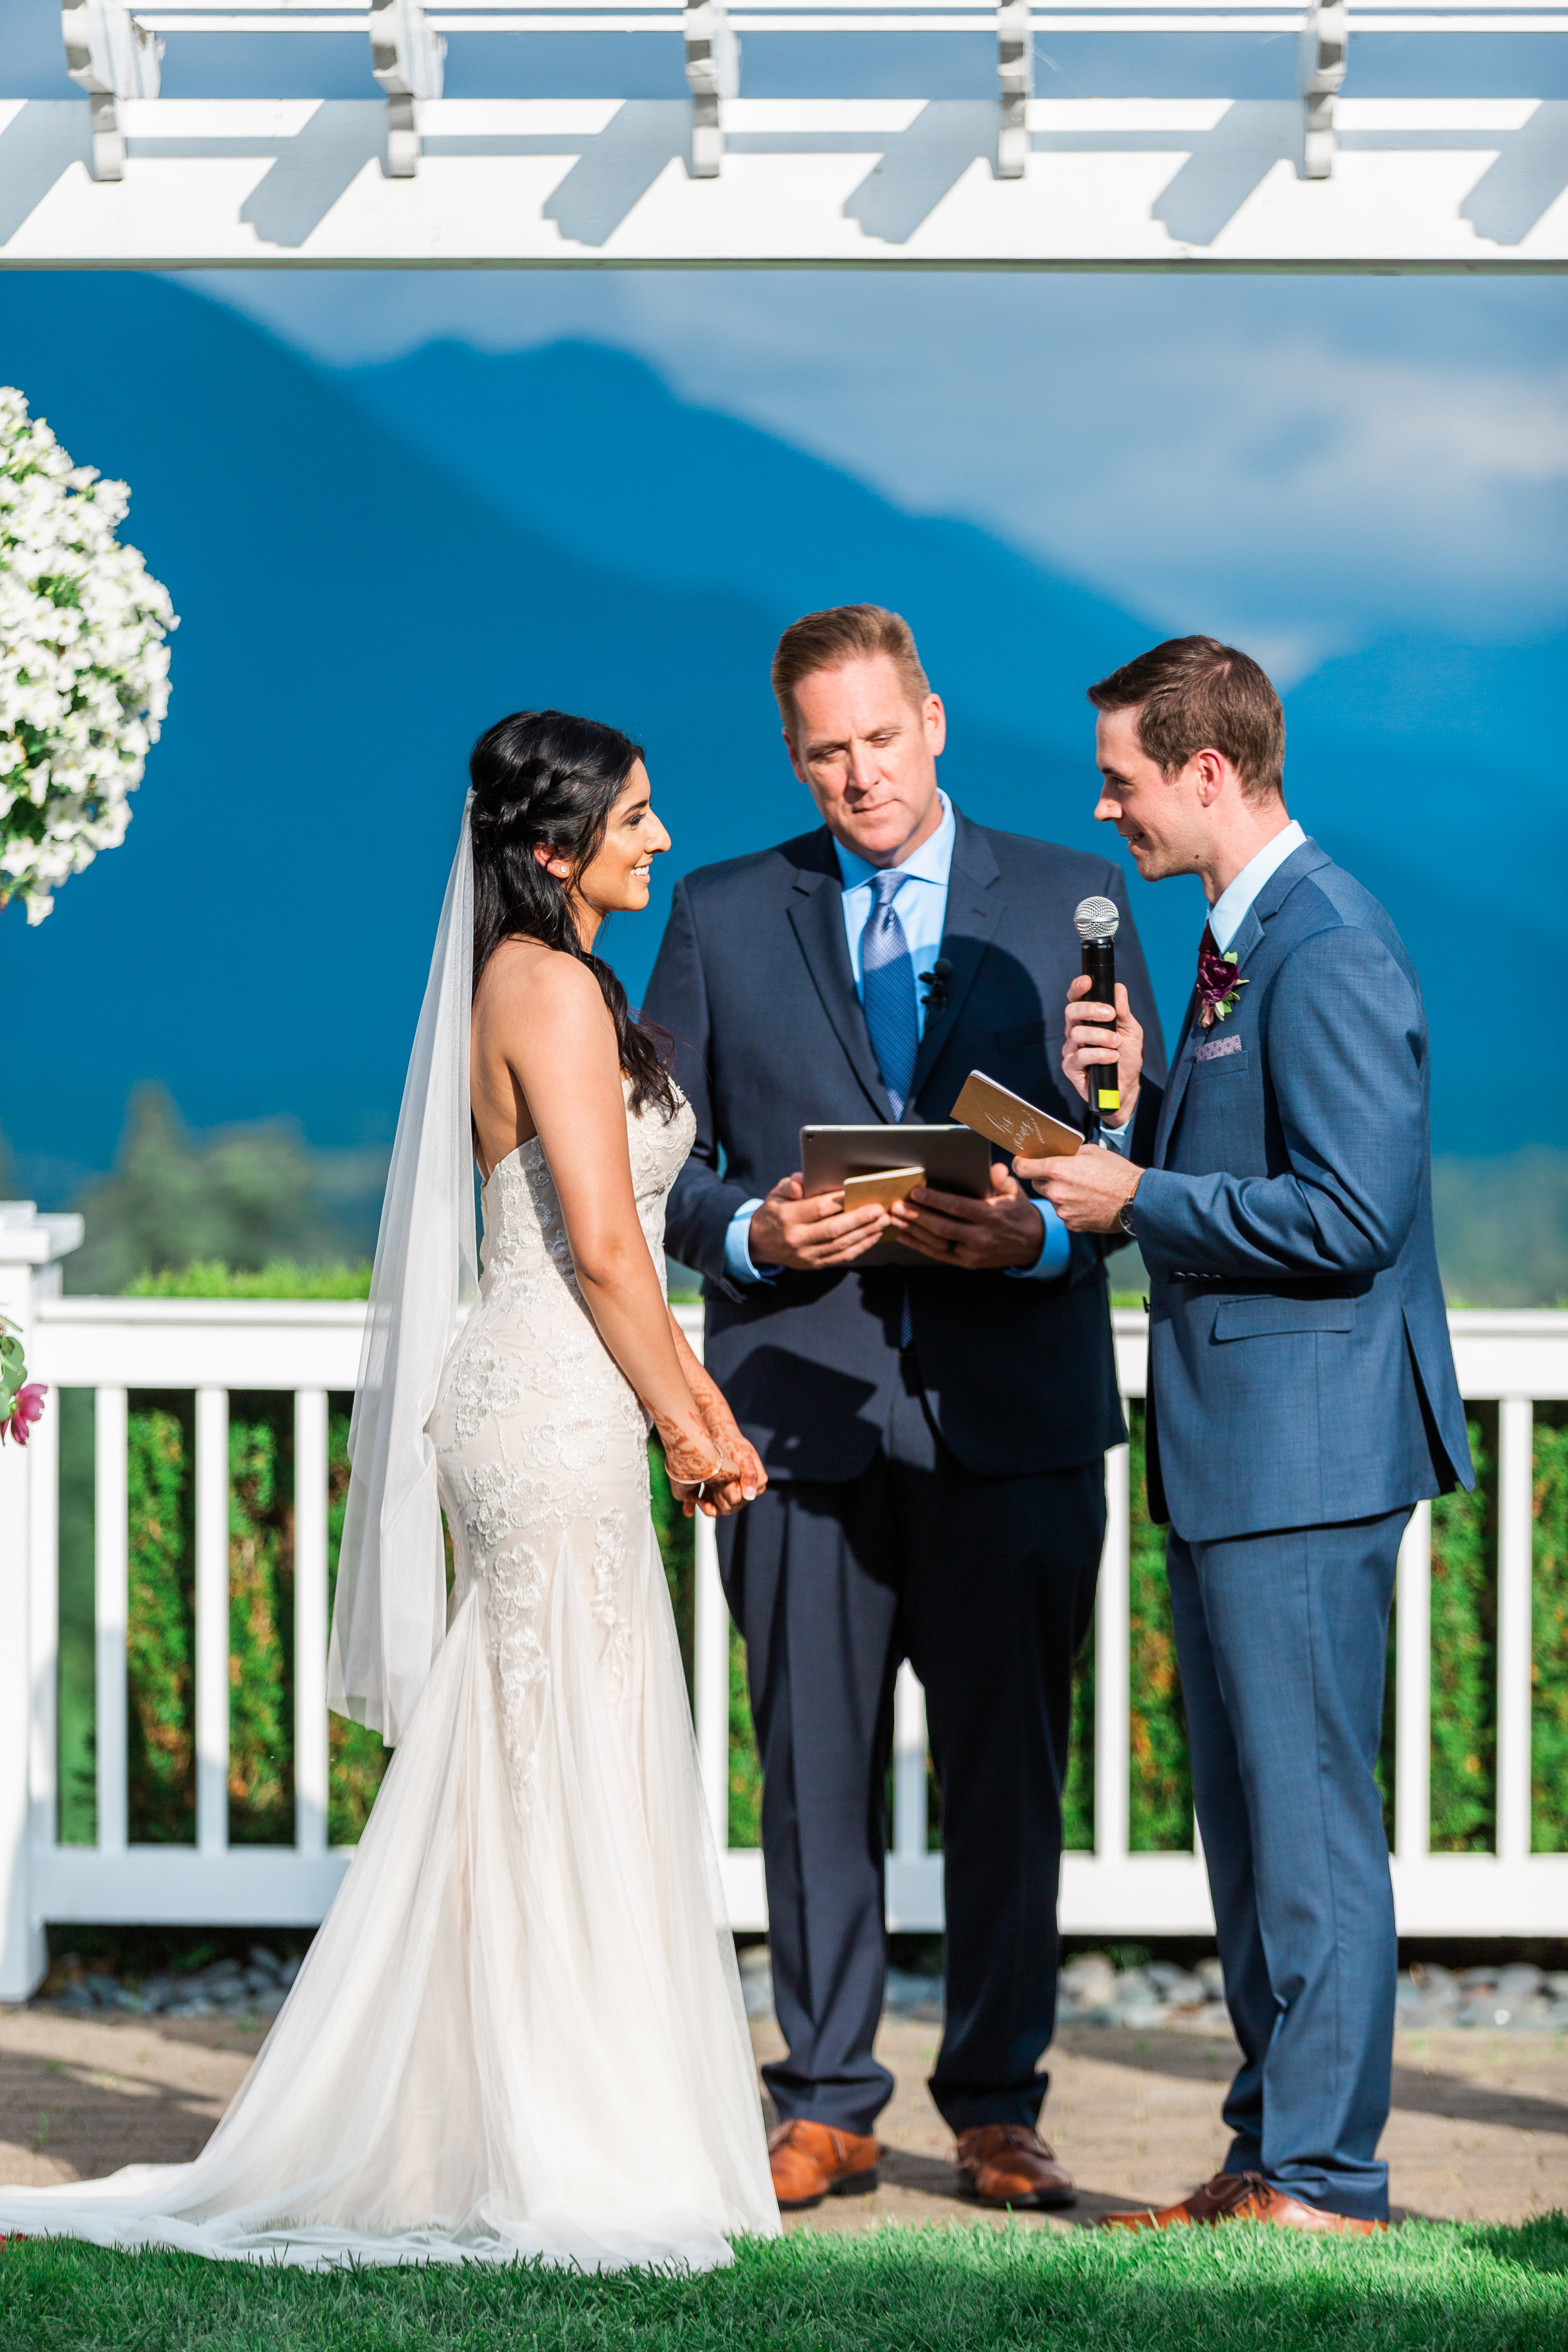 sohni and jacob-wedding at snoqualmie ridge-washington janelle elaine photography -1-2.jpg